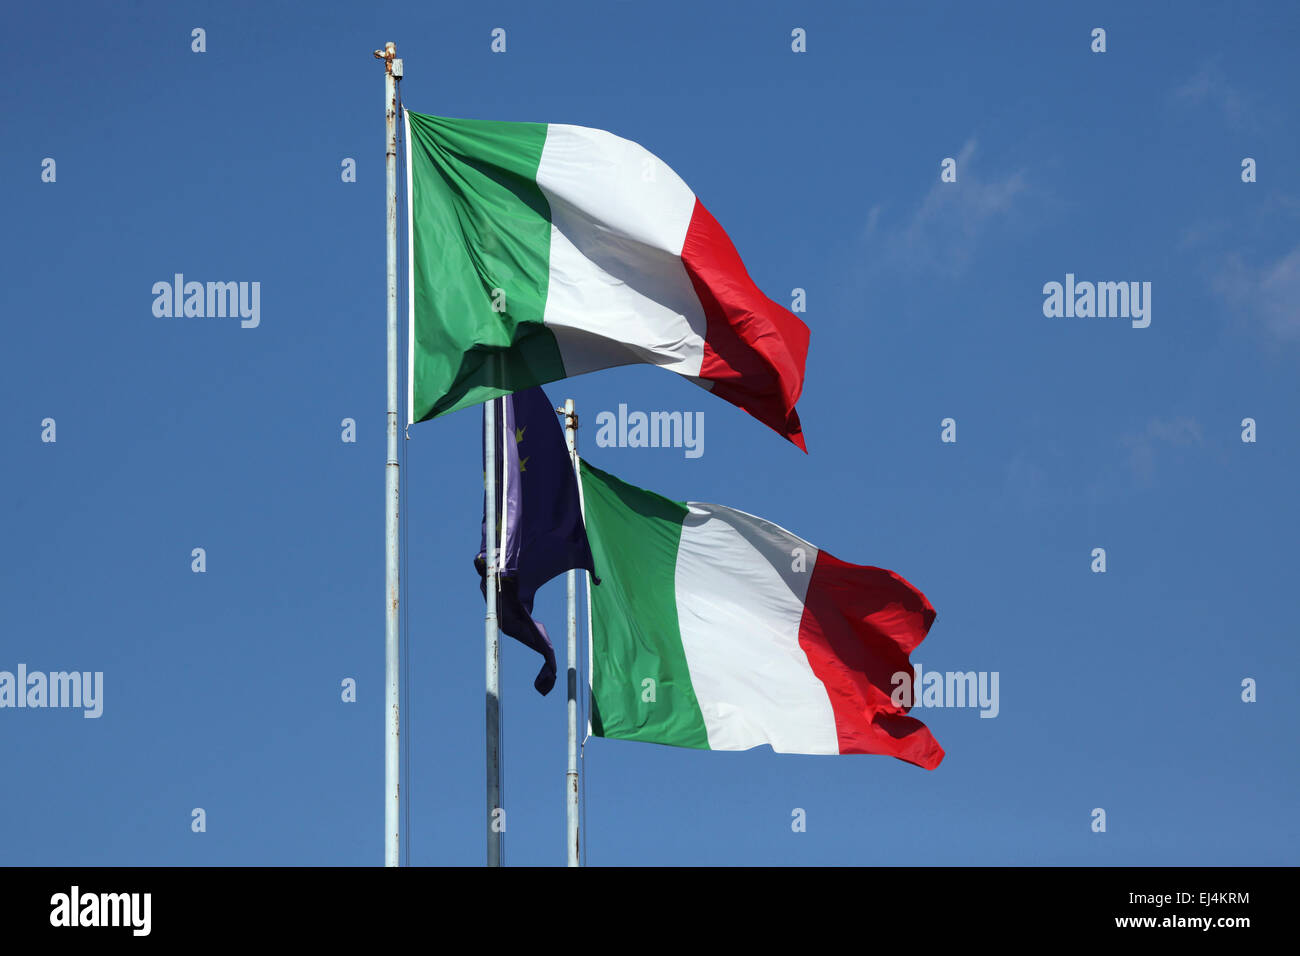 National flag of Italy and flag of the European Union in Rome, Italy. - Stock Image